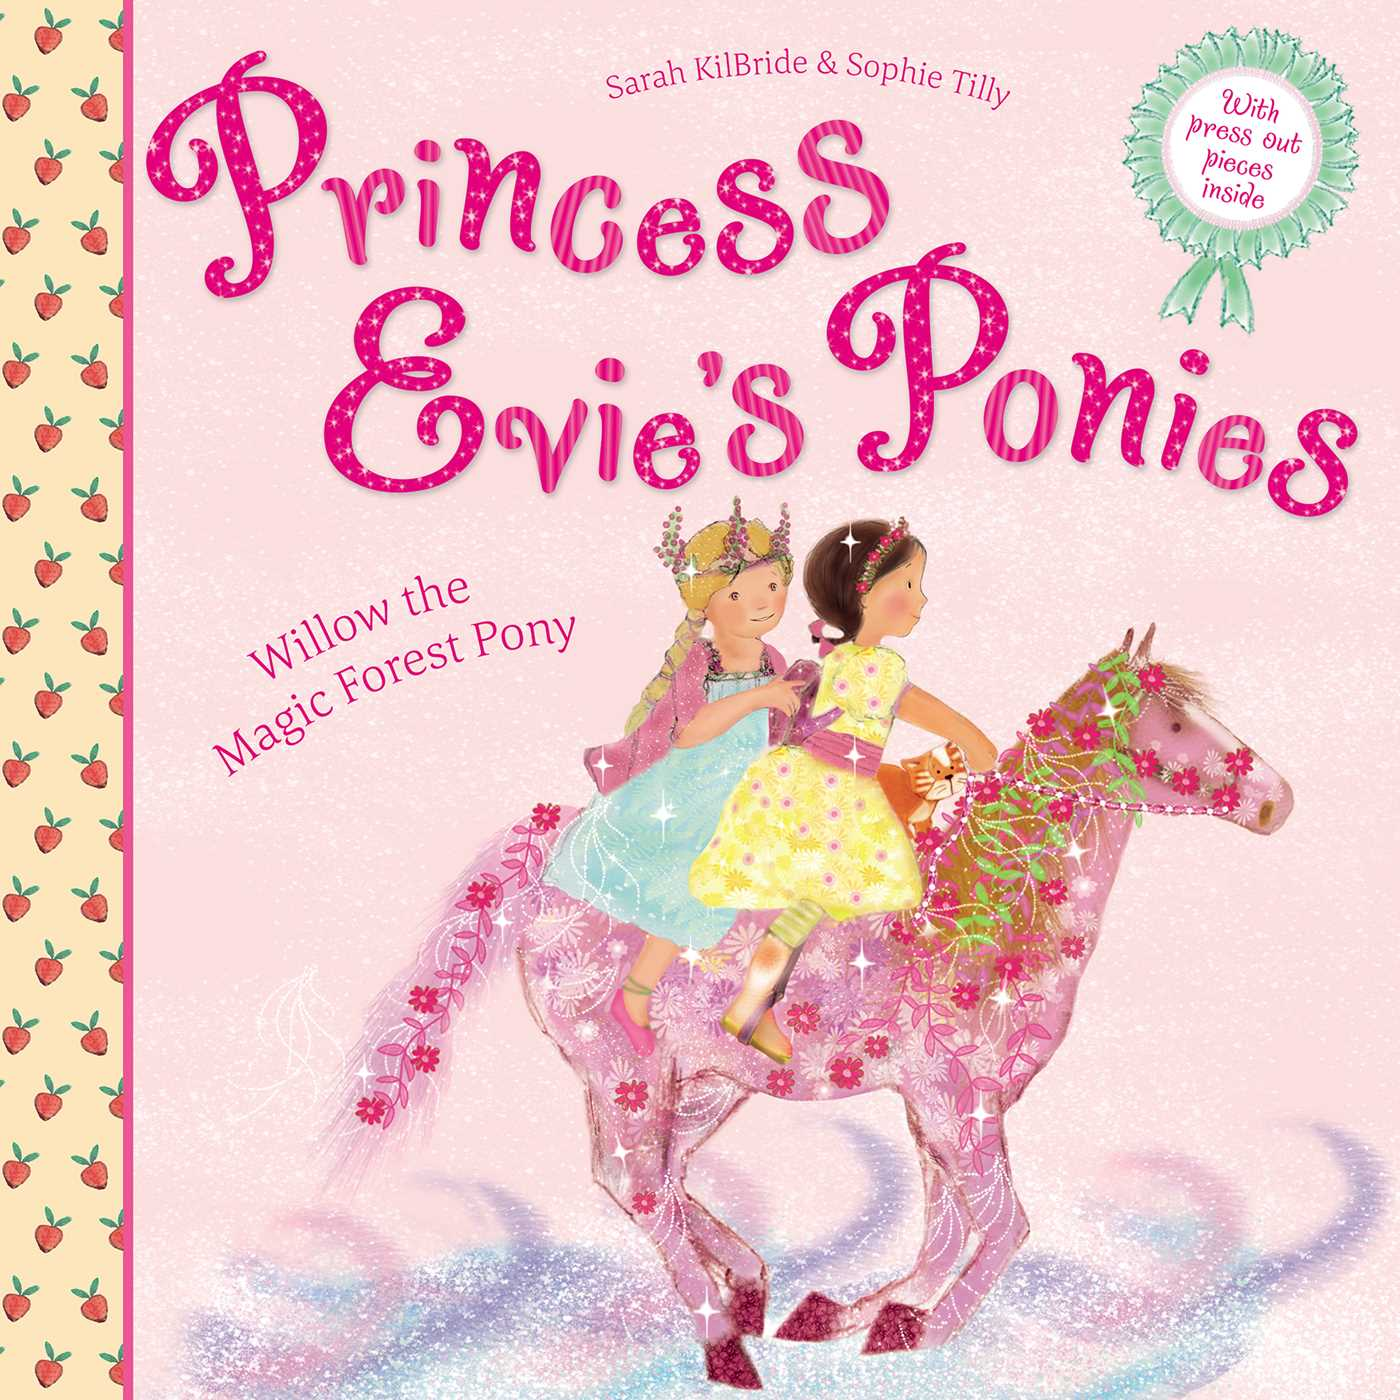 Princess evies ponies willow the magic forest pony 9781471163753 hr